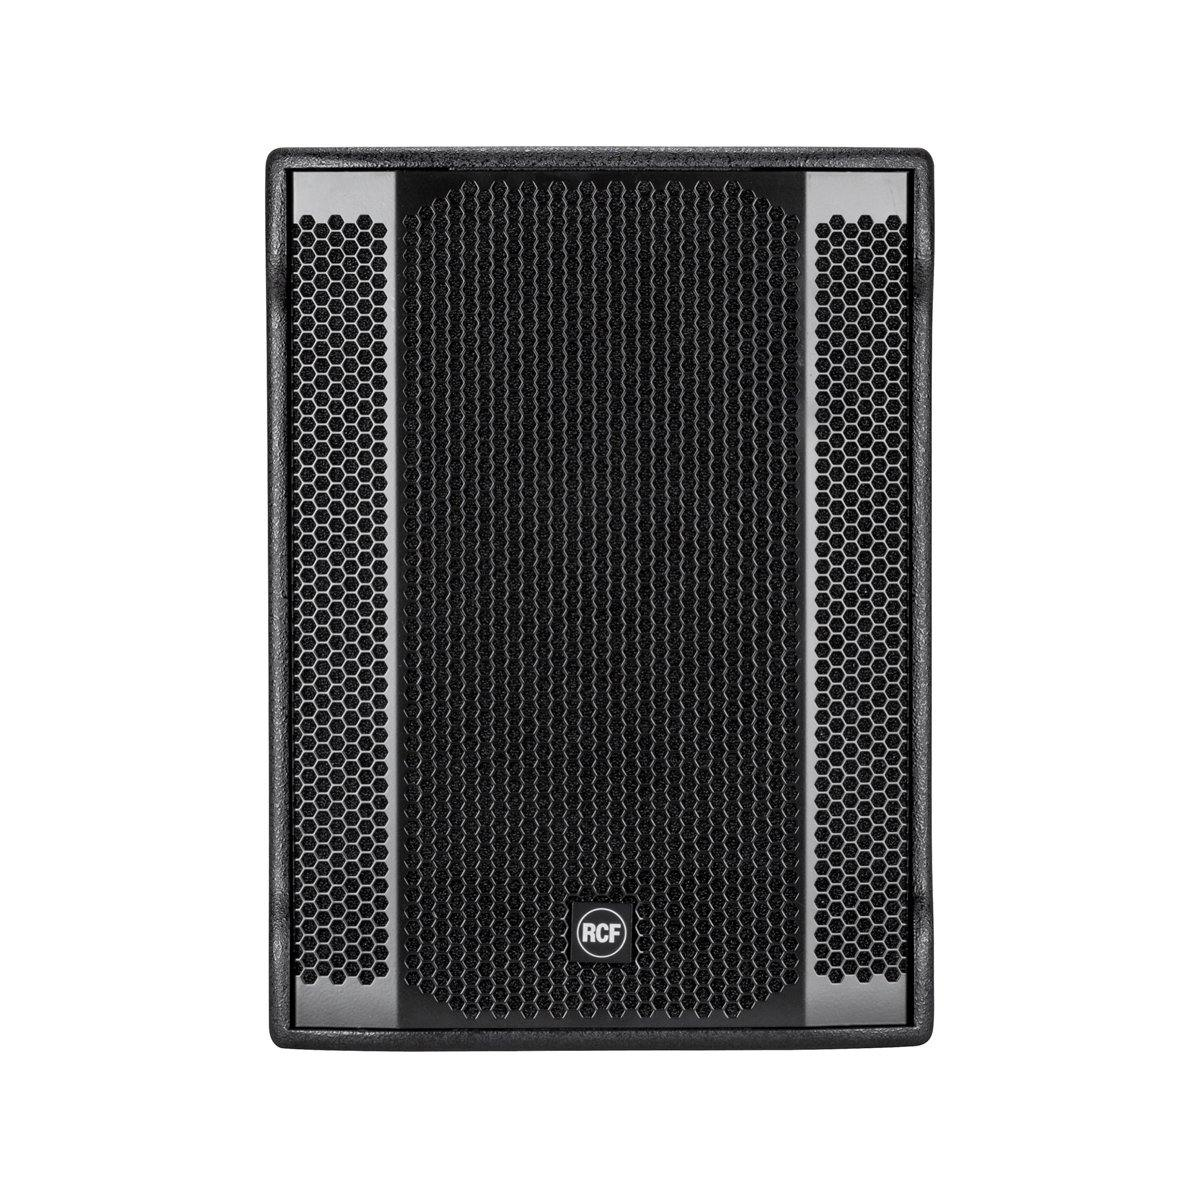 "RCF SUB 8003-AS II Active 18"" Subwoofer - ICONS Shop"